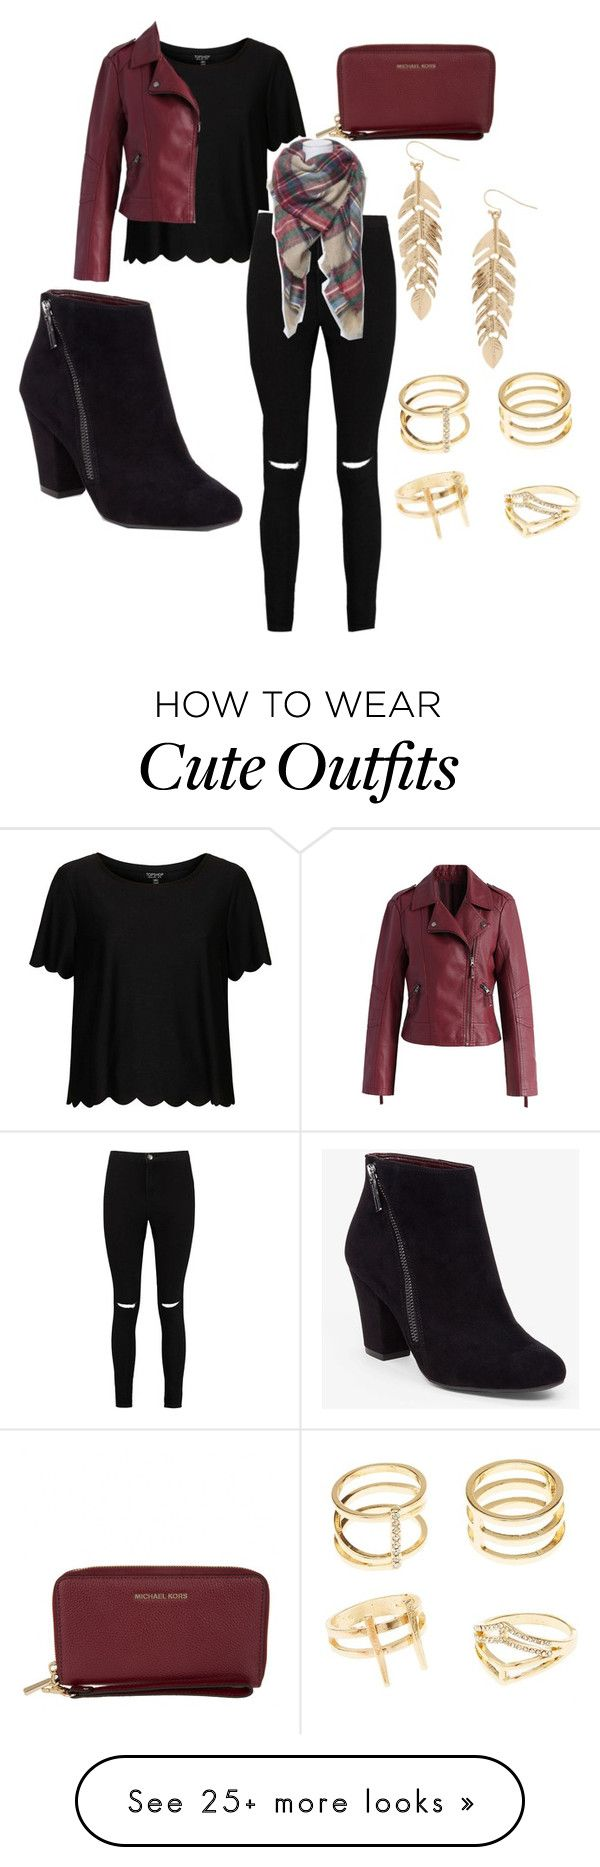 """""""Cute Fall Outfit"""" by meganratliff27 on Polyvore featuring Topshop, Boohoo, Chicwish, BCBGeneration, MICHAEL Michael Kors, Charlotte Russe and Humble Chic"""